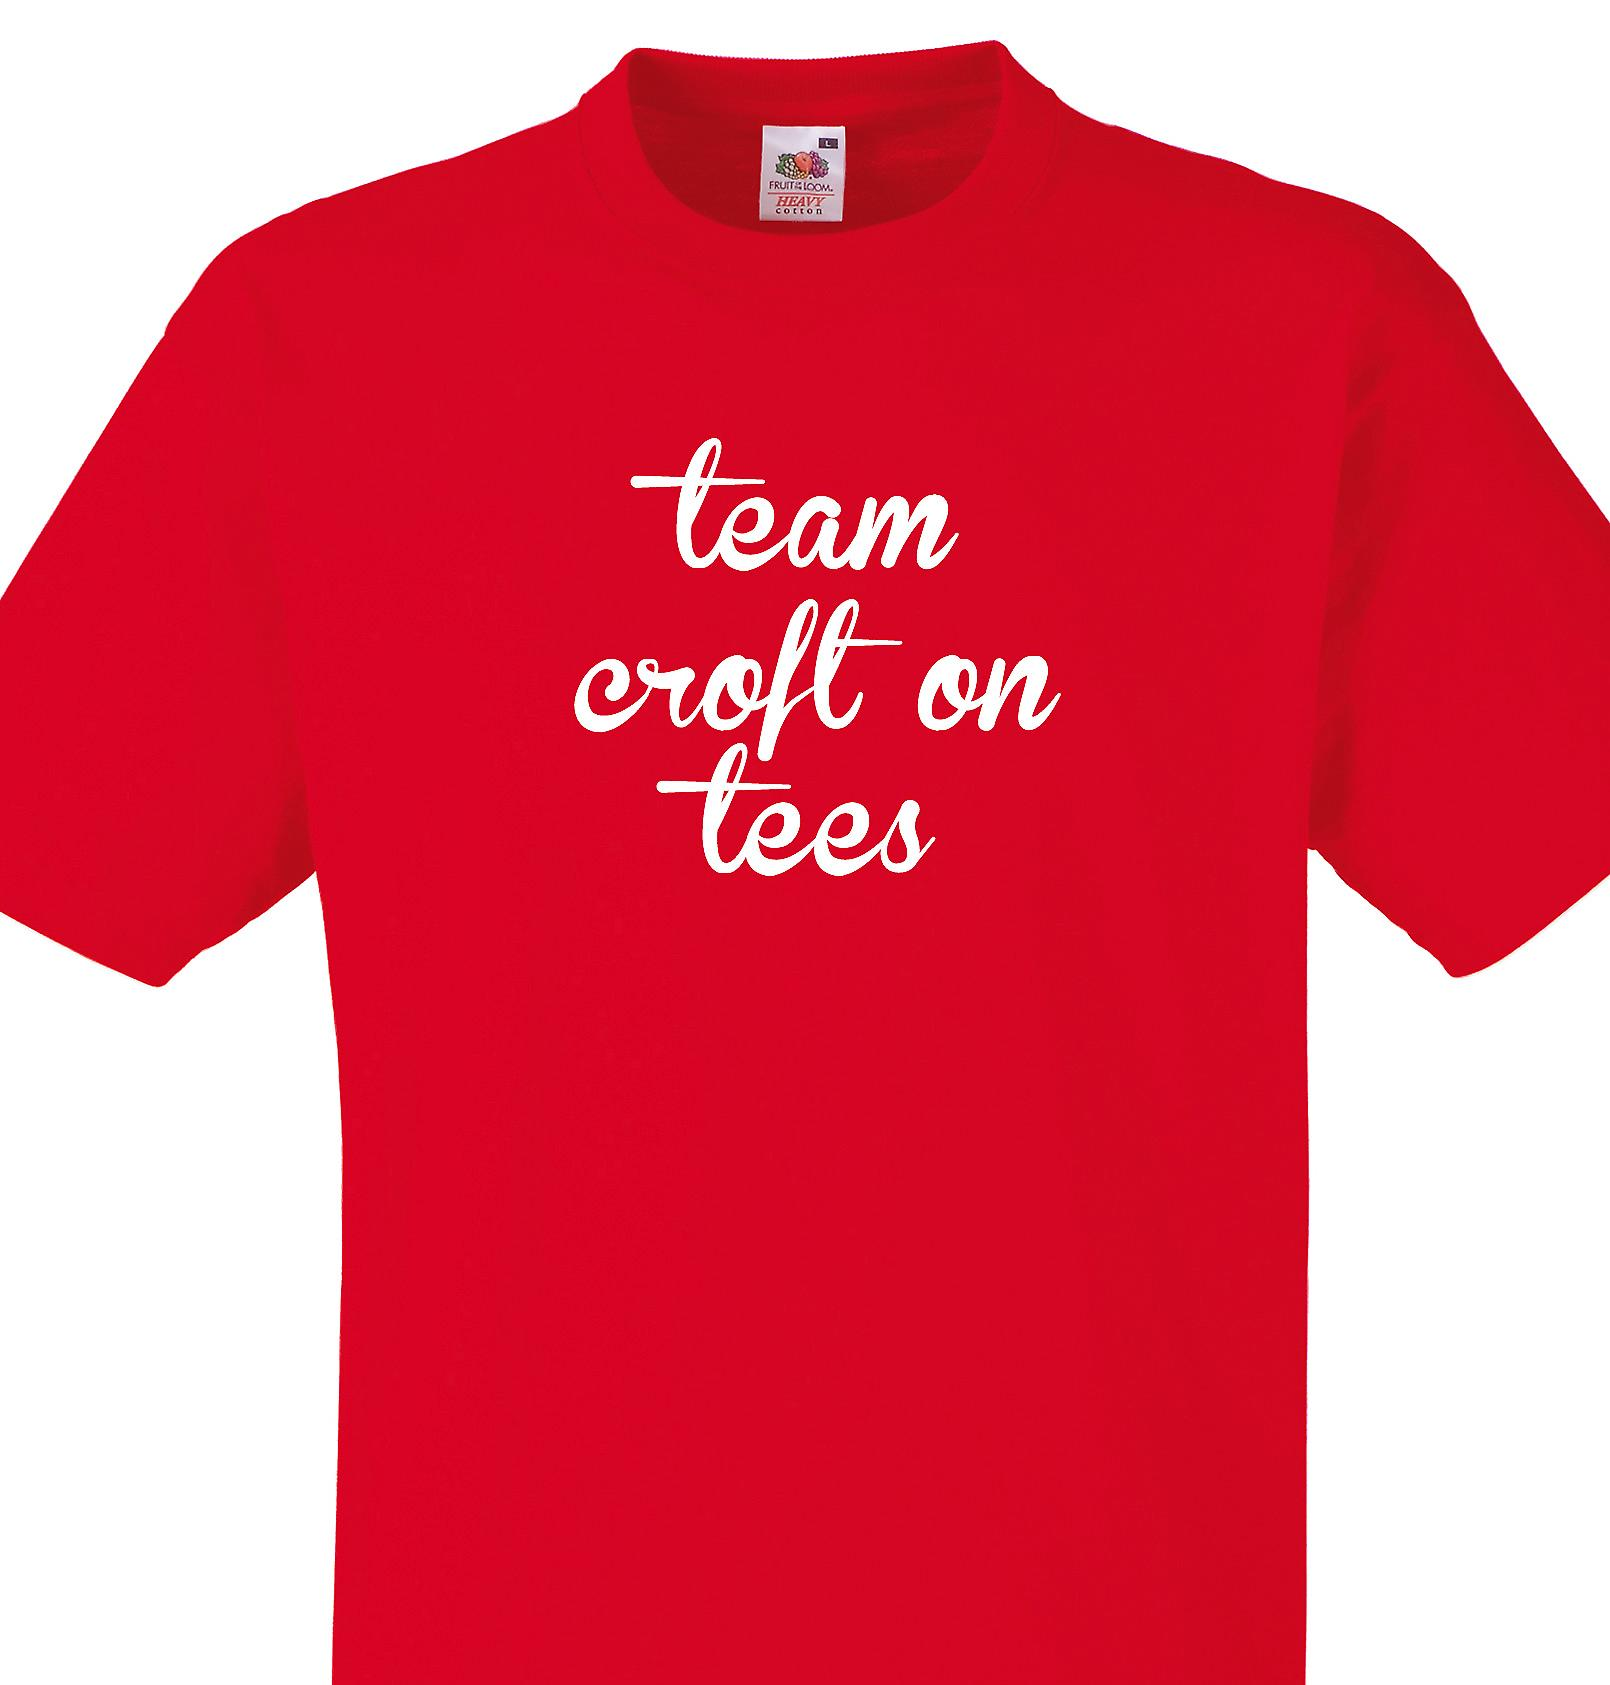 Team Croft on tees Red T shirt